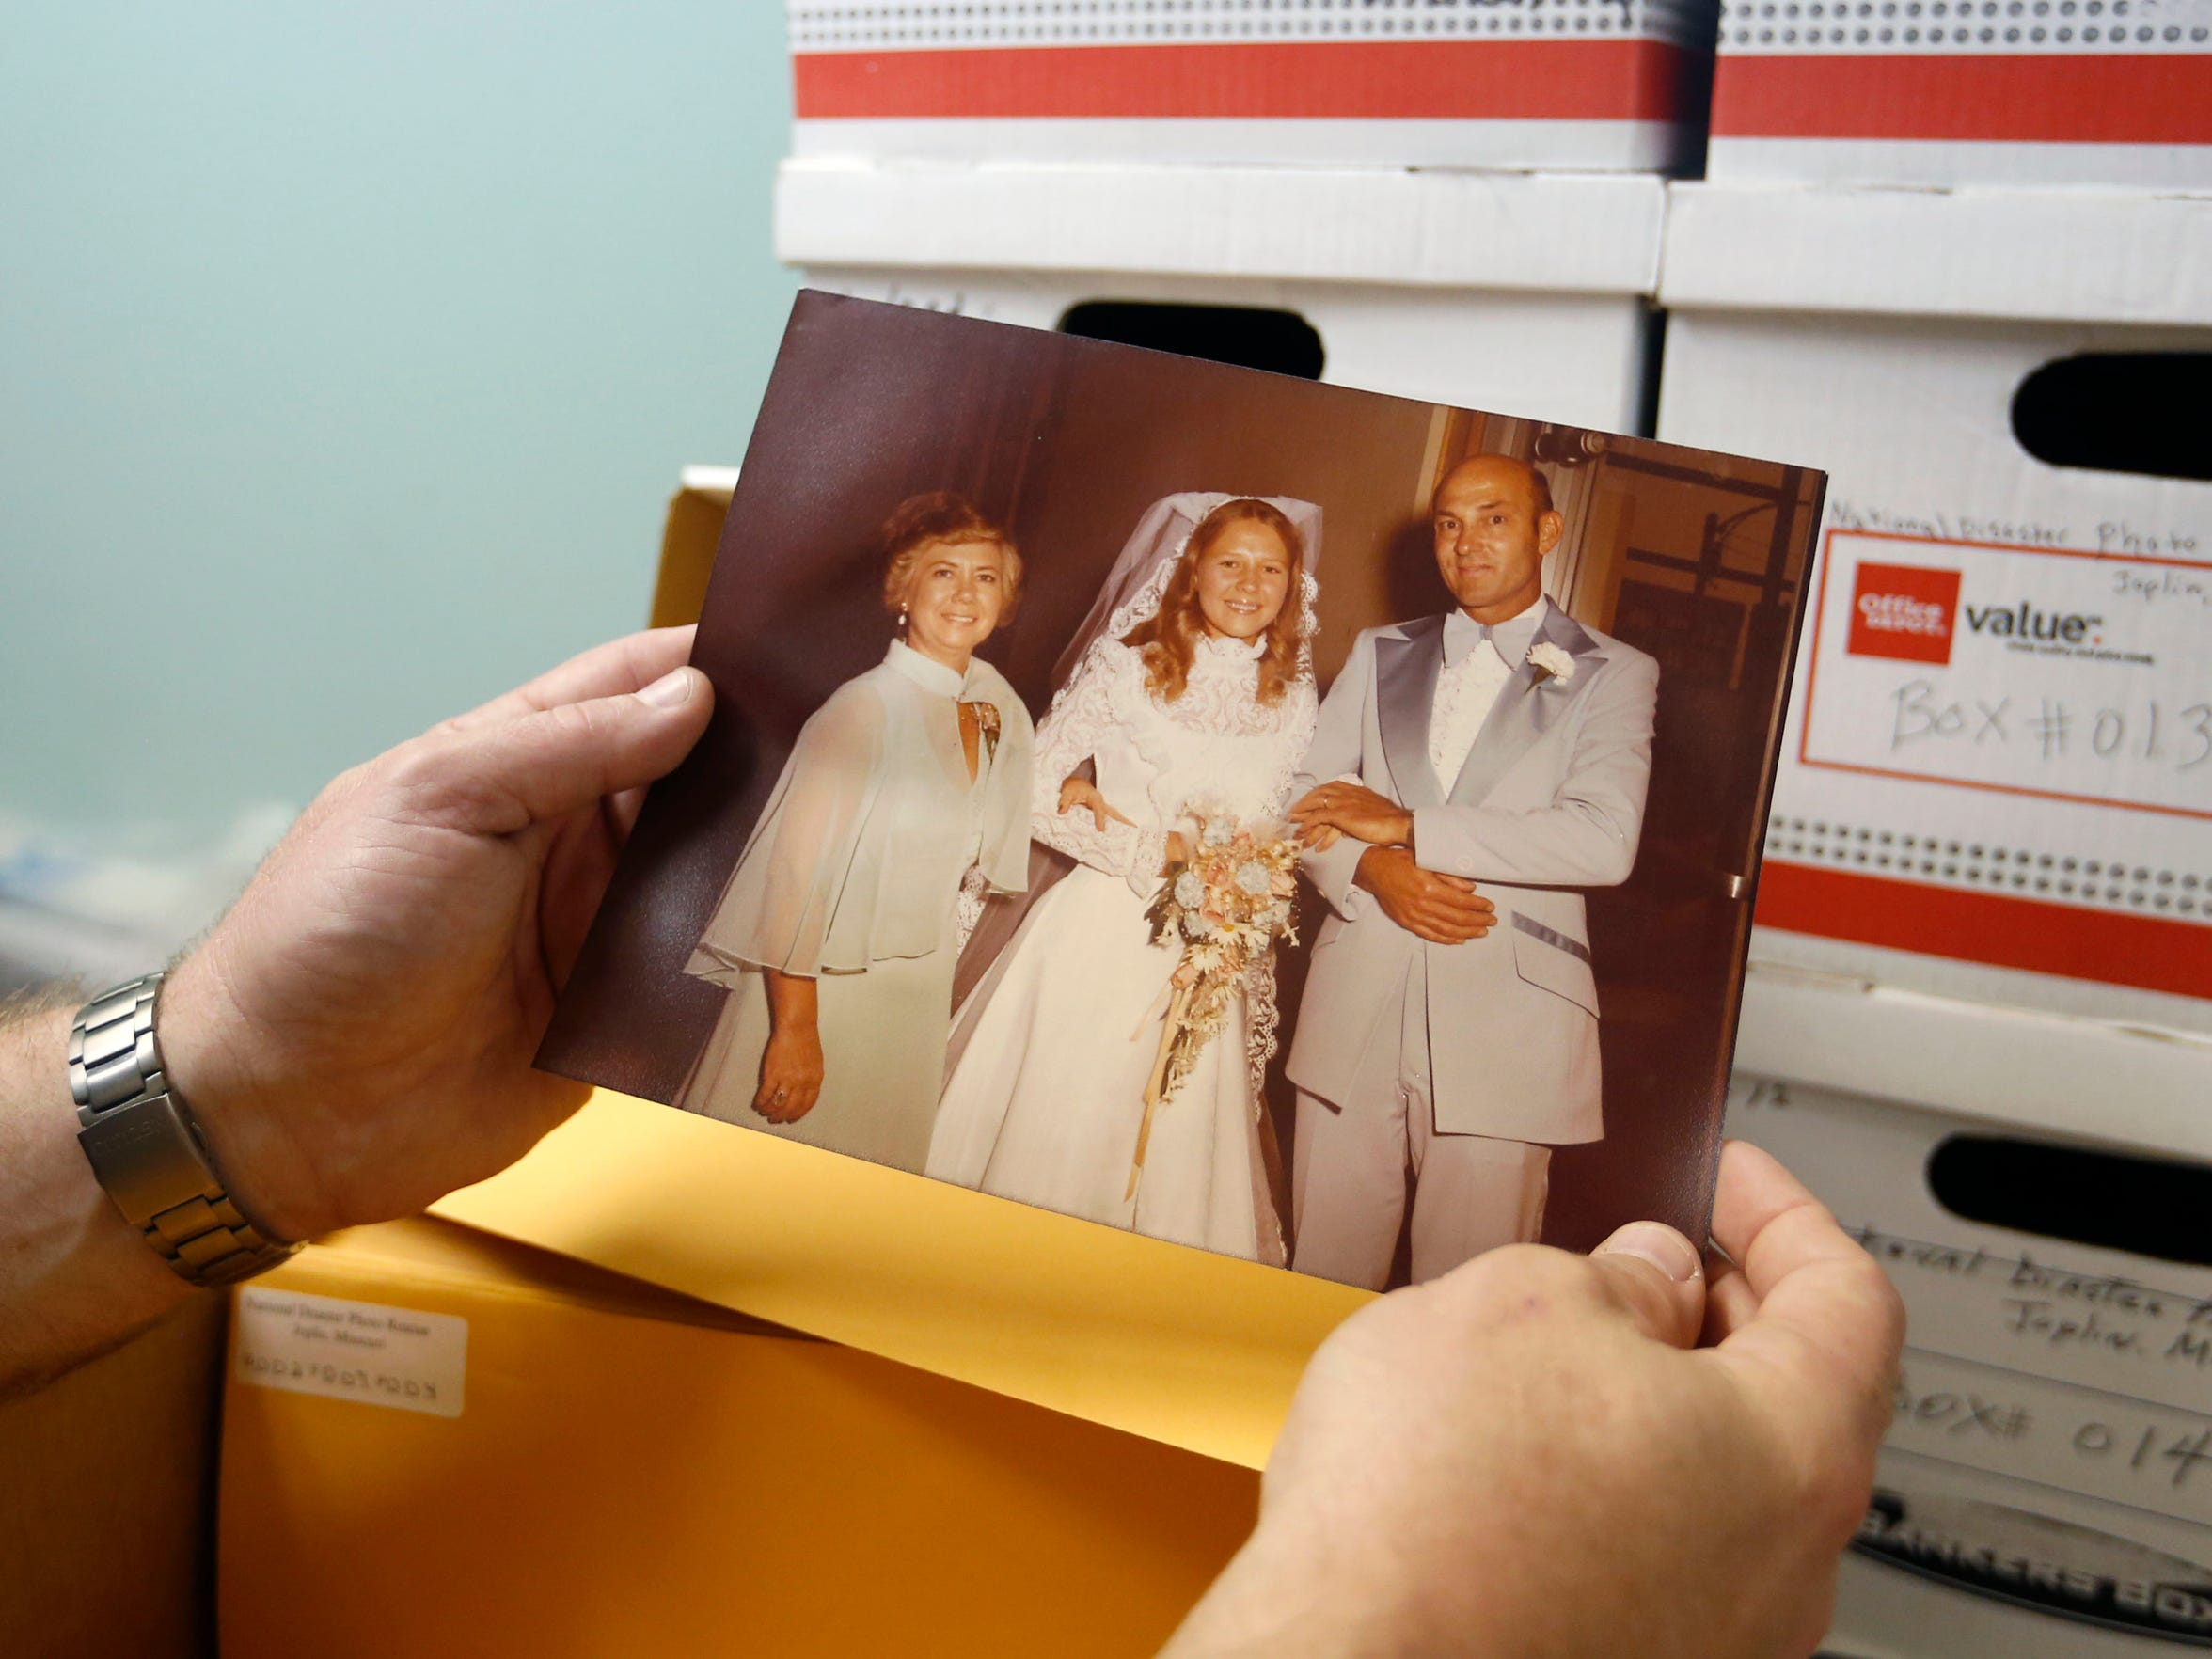 A wedding photo found after the 2011 Joplin tornado